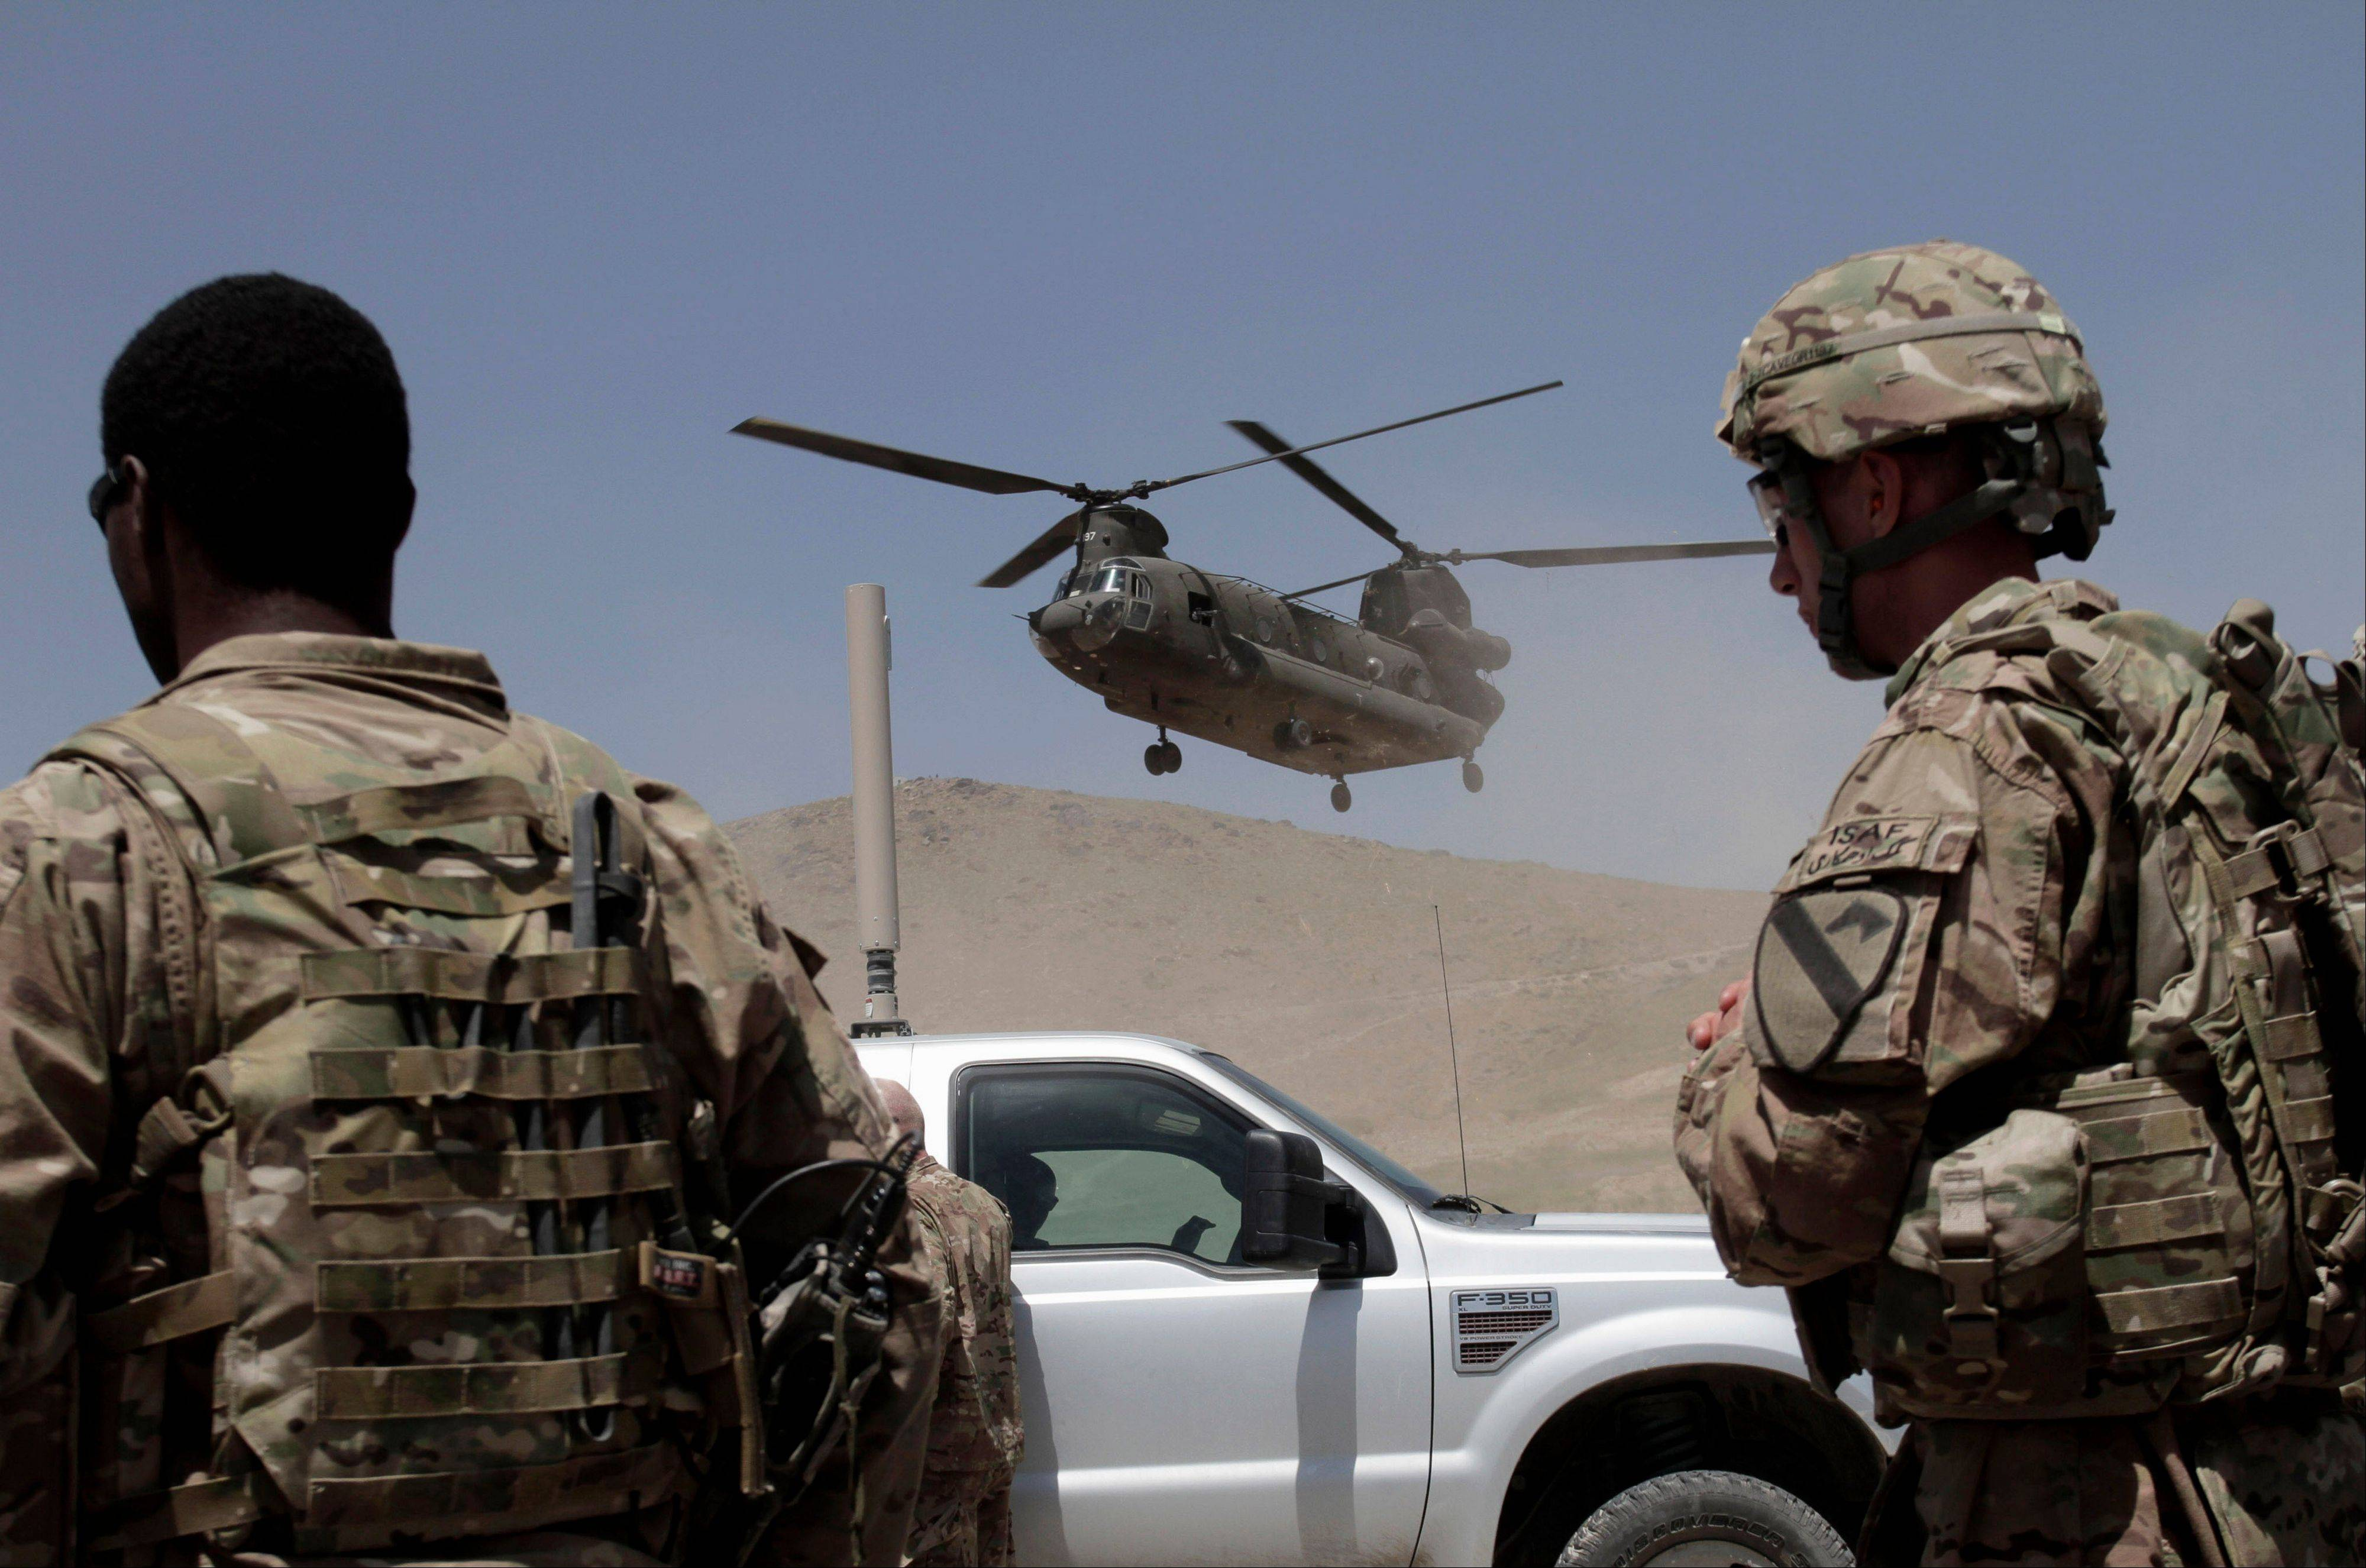 NATO solders wait for a helicopter after a ceremony at a military academy on the outskirts of Kabul, Afghanistan, Tuesday, June 18, 2013. Afghan forces have taken over the lead from the U.S.-led NATO coalition for security nationwide, Afghan President Hamid Karzai announced in the significant milestone in the 12-year war.